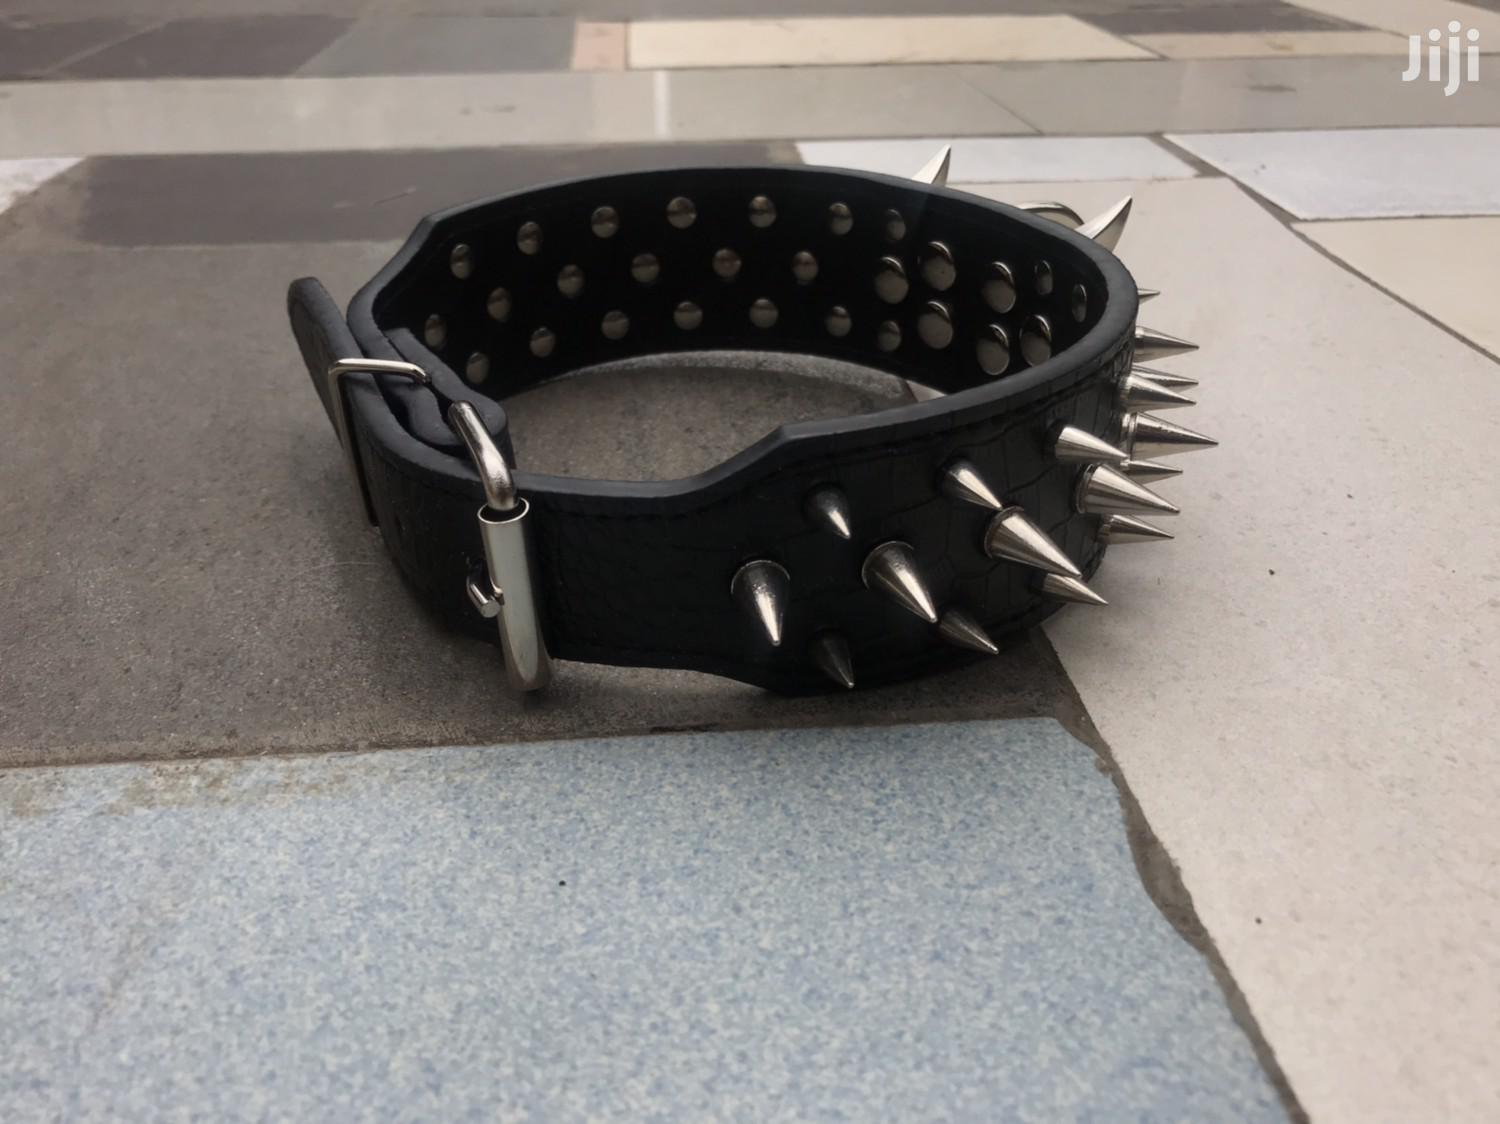 Dog Collars Available | Pet's Accessories for sale in Harambee, Nairobi, Kenya